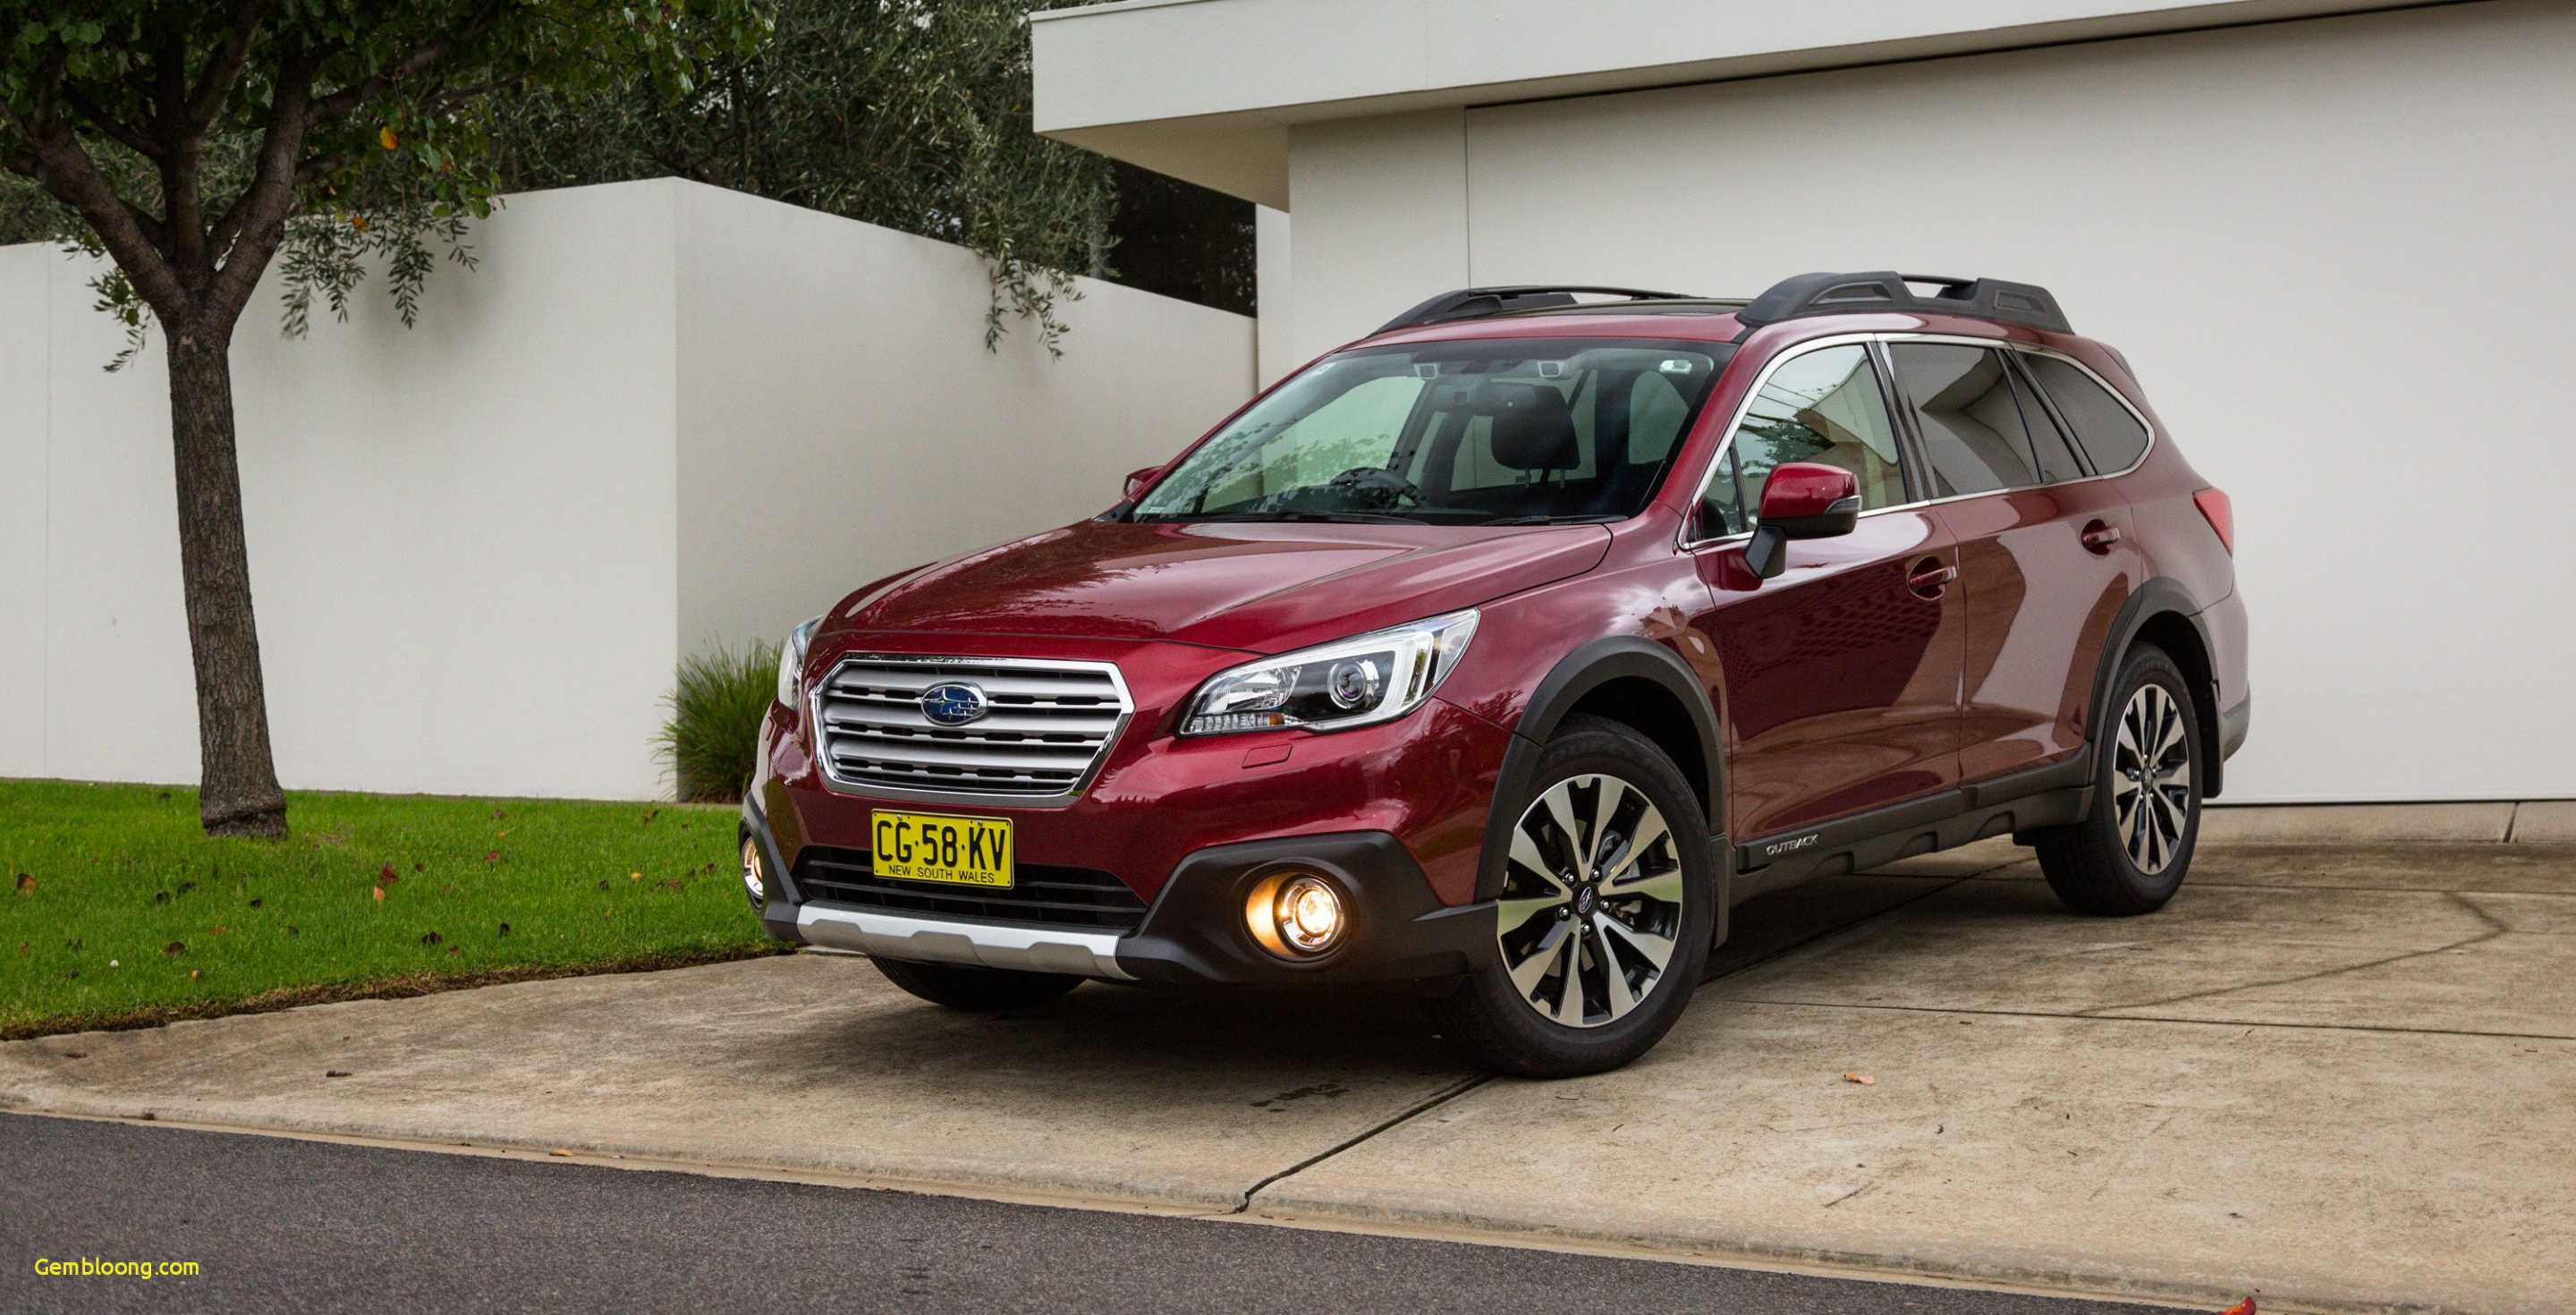 Special 2020 Subaru Legacy 2020 Subaru Outback 2016 Subaru Outback 2 0d Price and Review